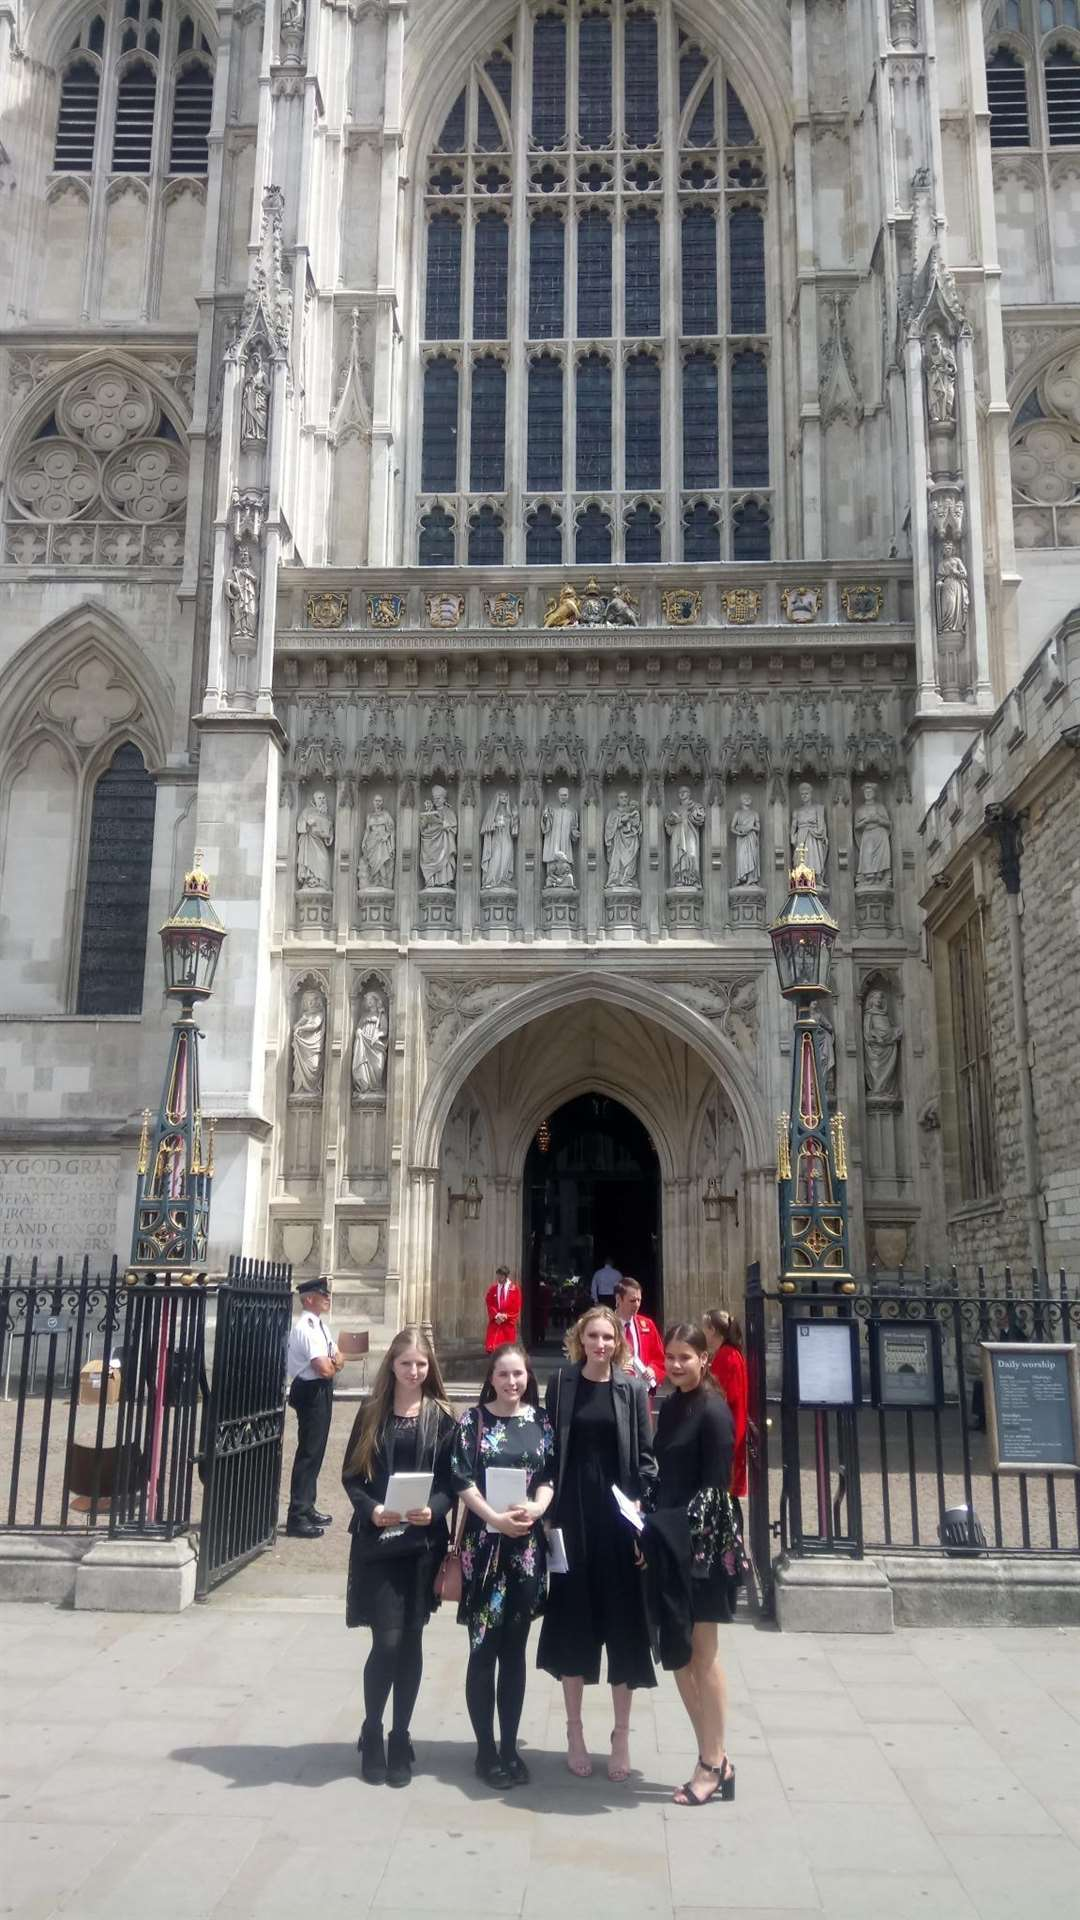 Four sixth form students from Walton Girls' High School attended the Service of Thanksgiving at Westminster Abbey on Friday. (2573084)